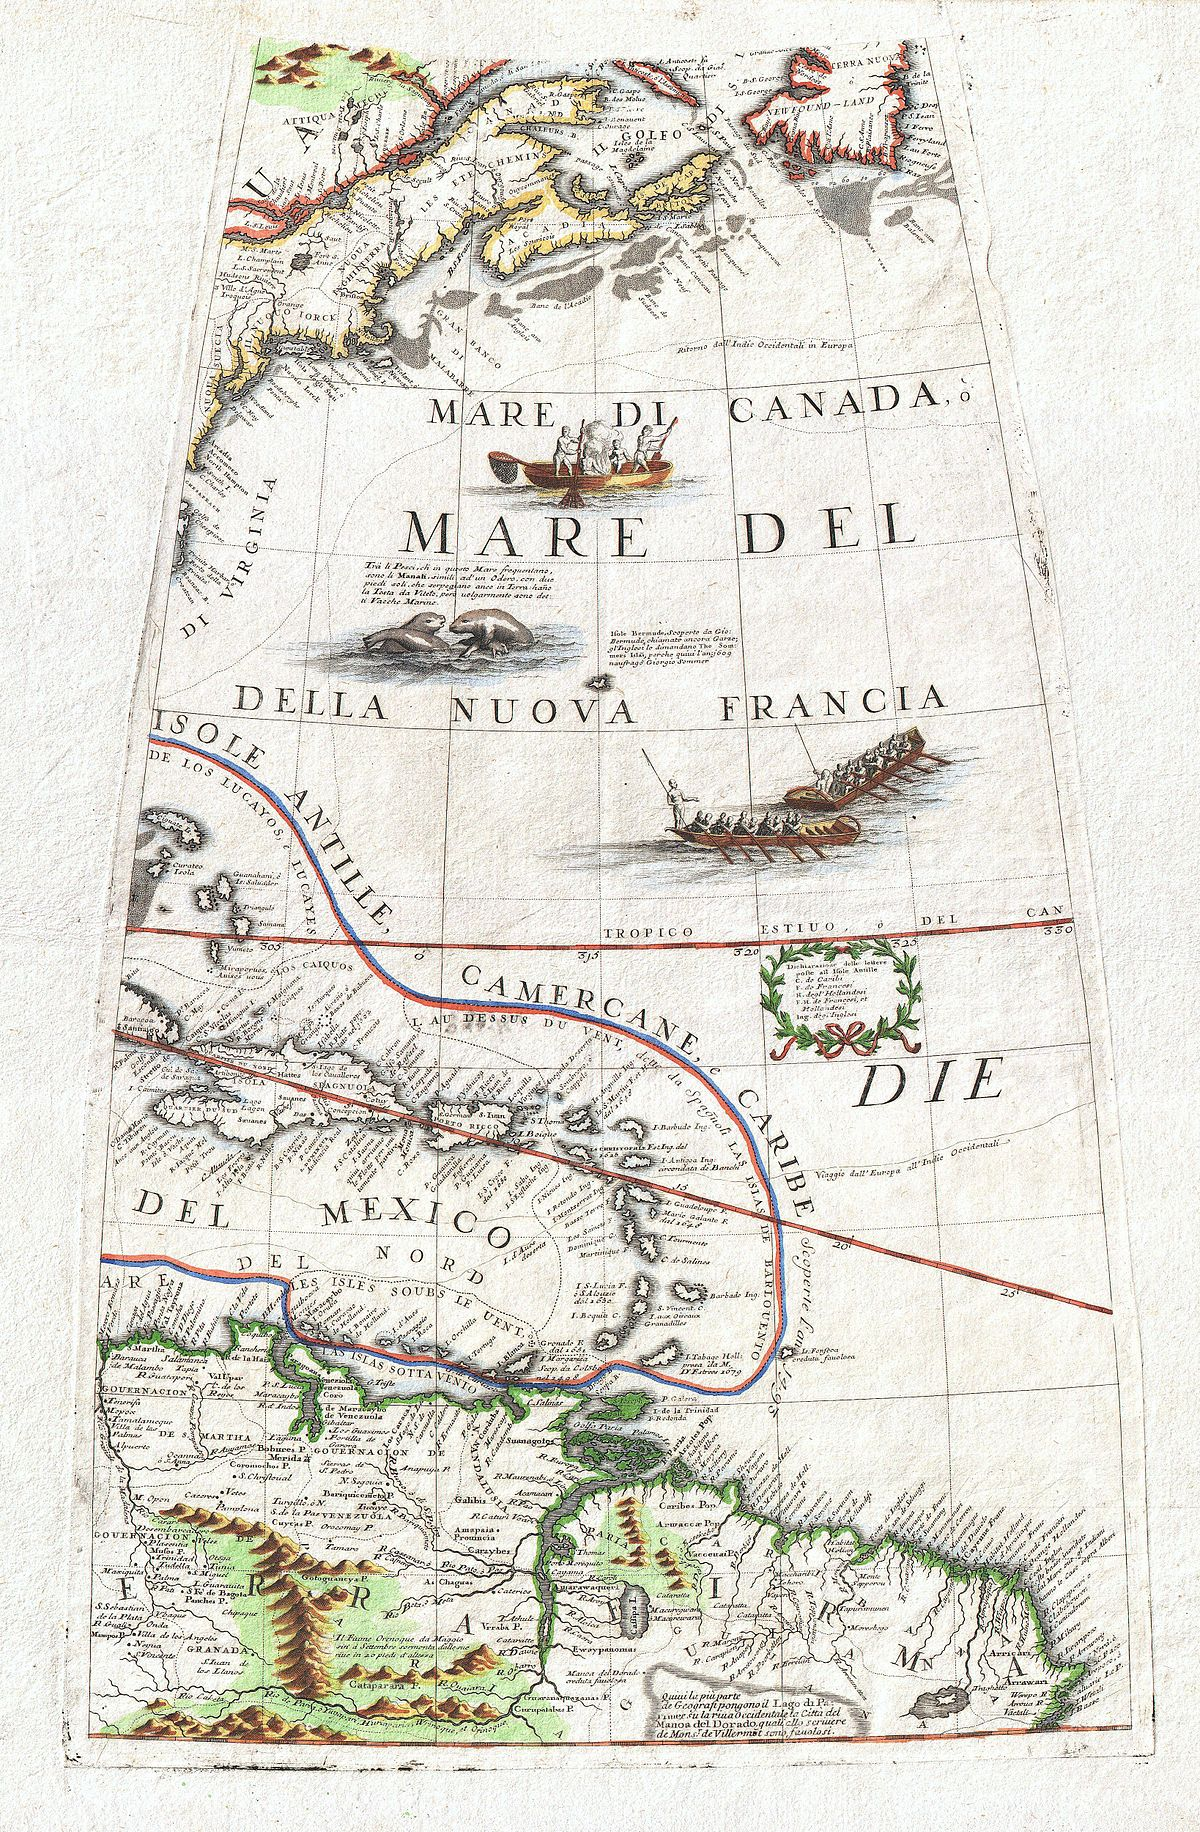 Image of: File 1688 Coronelli Globe Gore Map Of Ne North America The West Indies And Ne South America Geographicus Neamericagore Coronelli 1688 Jpg Wikimedia Commons